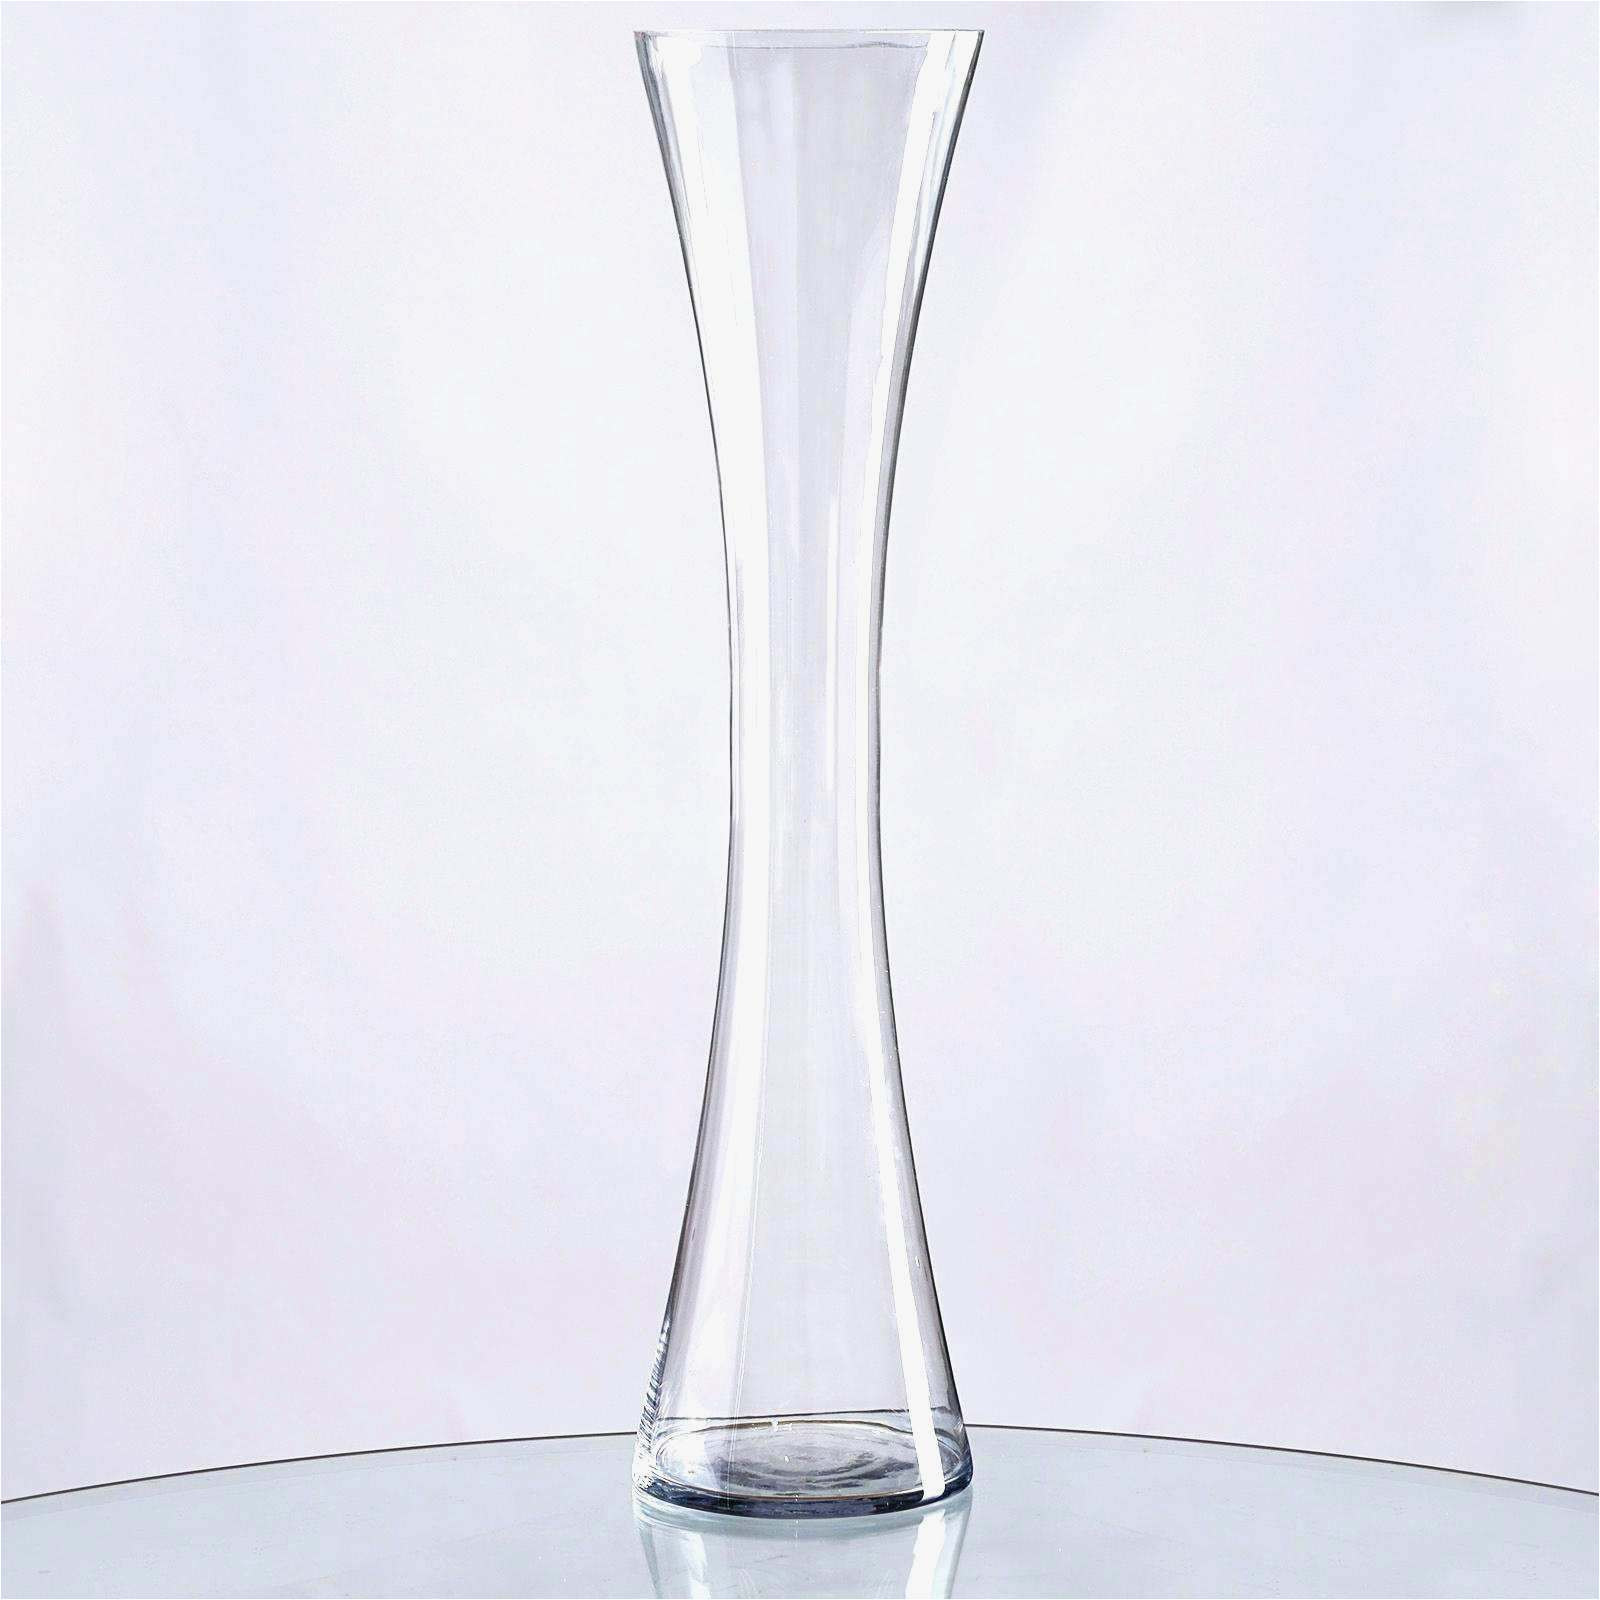 inexpensive vases for centerpieces of cheap wedding decorations in bulk trending glass vase centerpieces regarding cheap wedding decorations in bulk gallery glass vase centerpieces for wedding luxury design ideas wholesale awesome